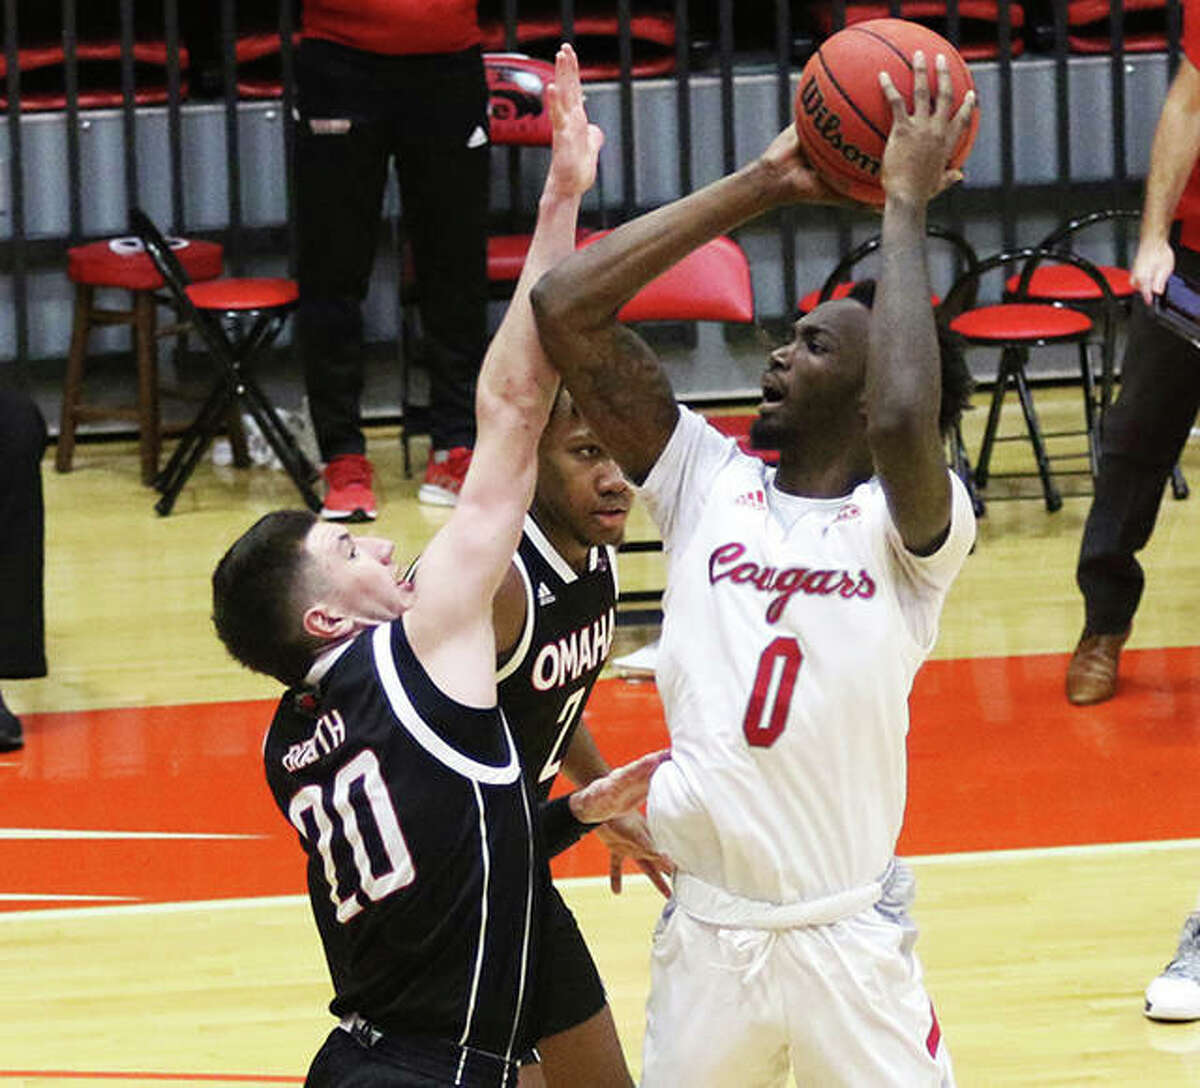 SIUE's Sidney Wilson (0) shoots over Omaha's Jadin Booth during a Dec. 5 game at First Community Arena in Edwardsville. The Cougars play the first of three road games this week Tuesday night vs. Eastern Illinois in Charleston.